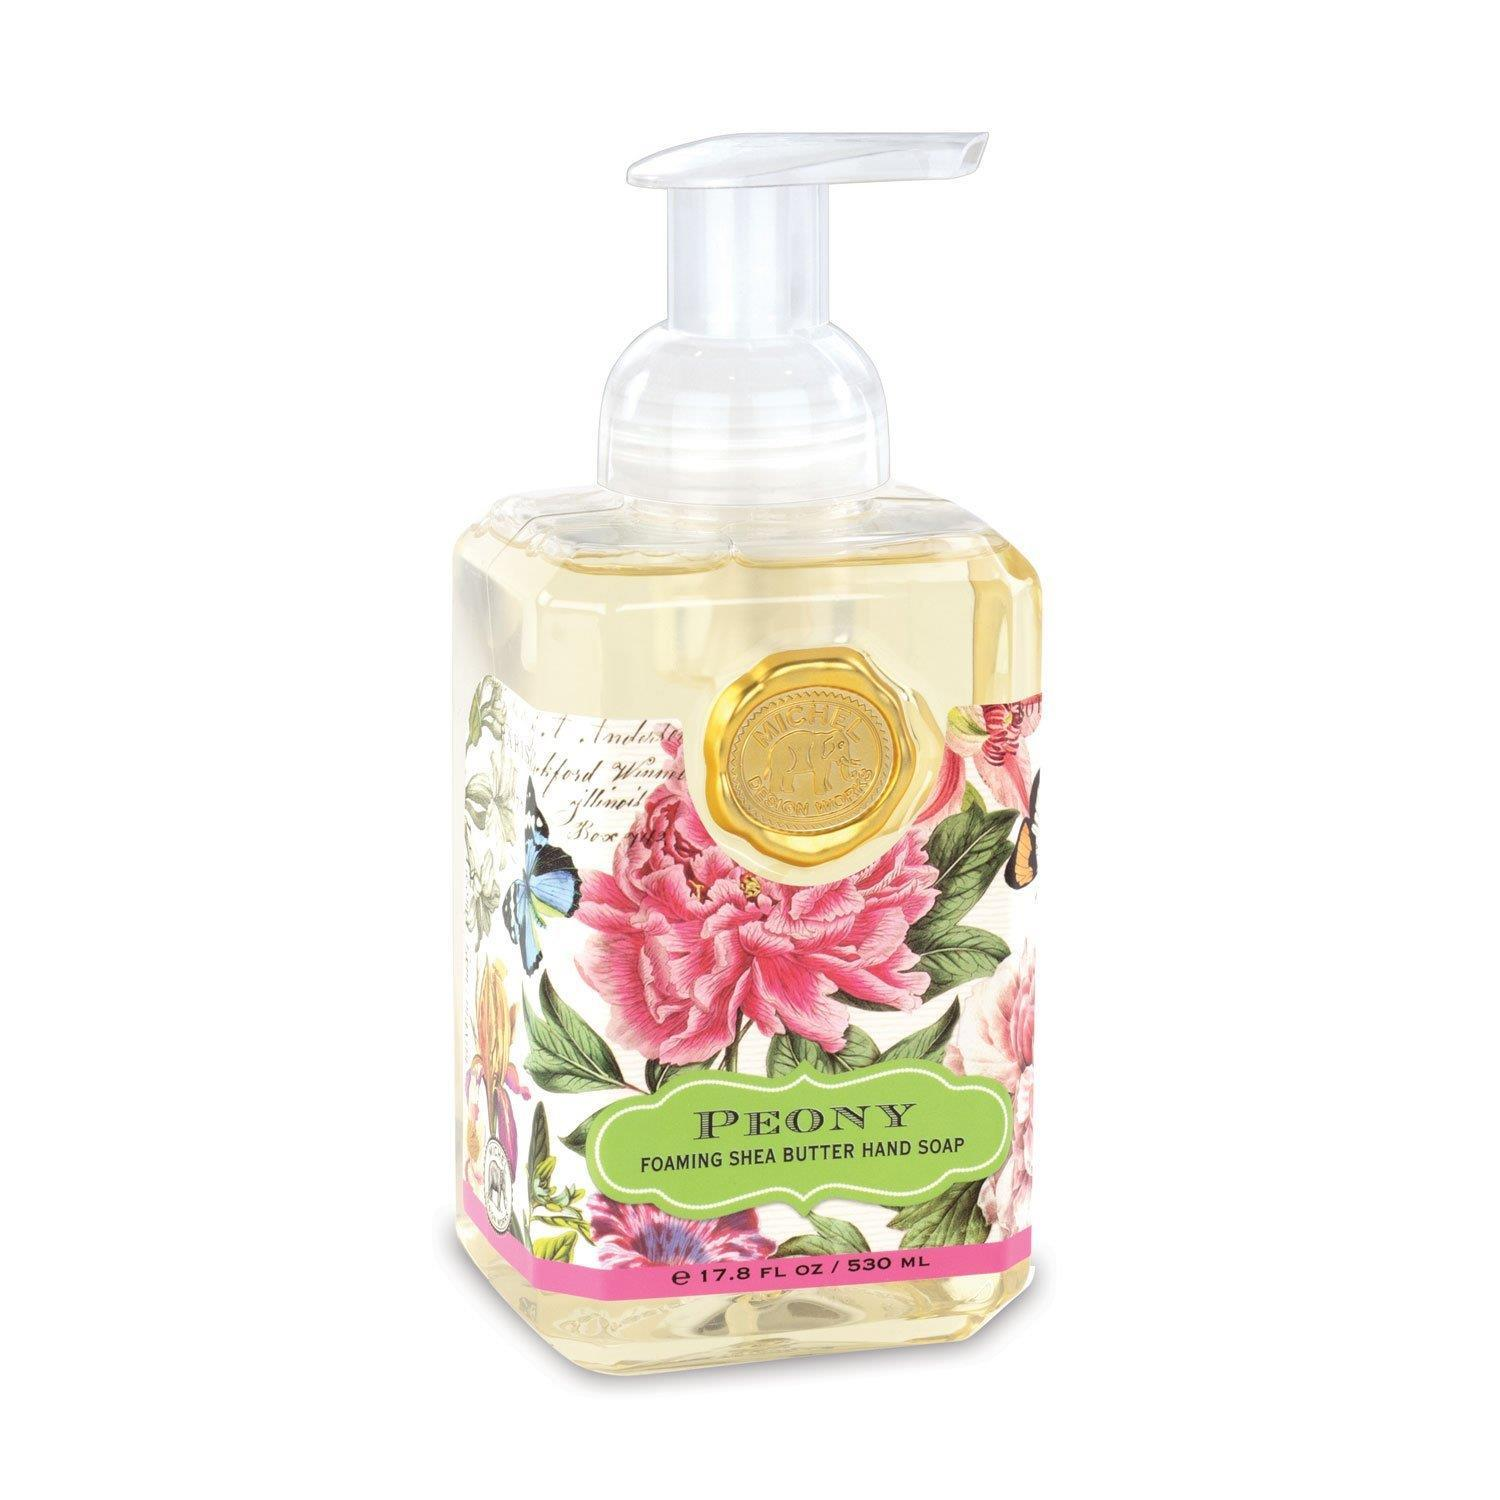 Peony Foaming Hand Soap - Boutique Marie Dumas